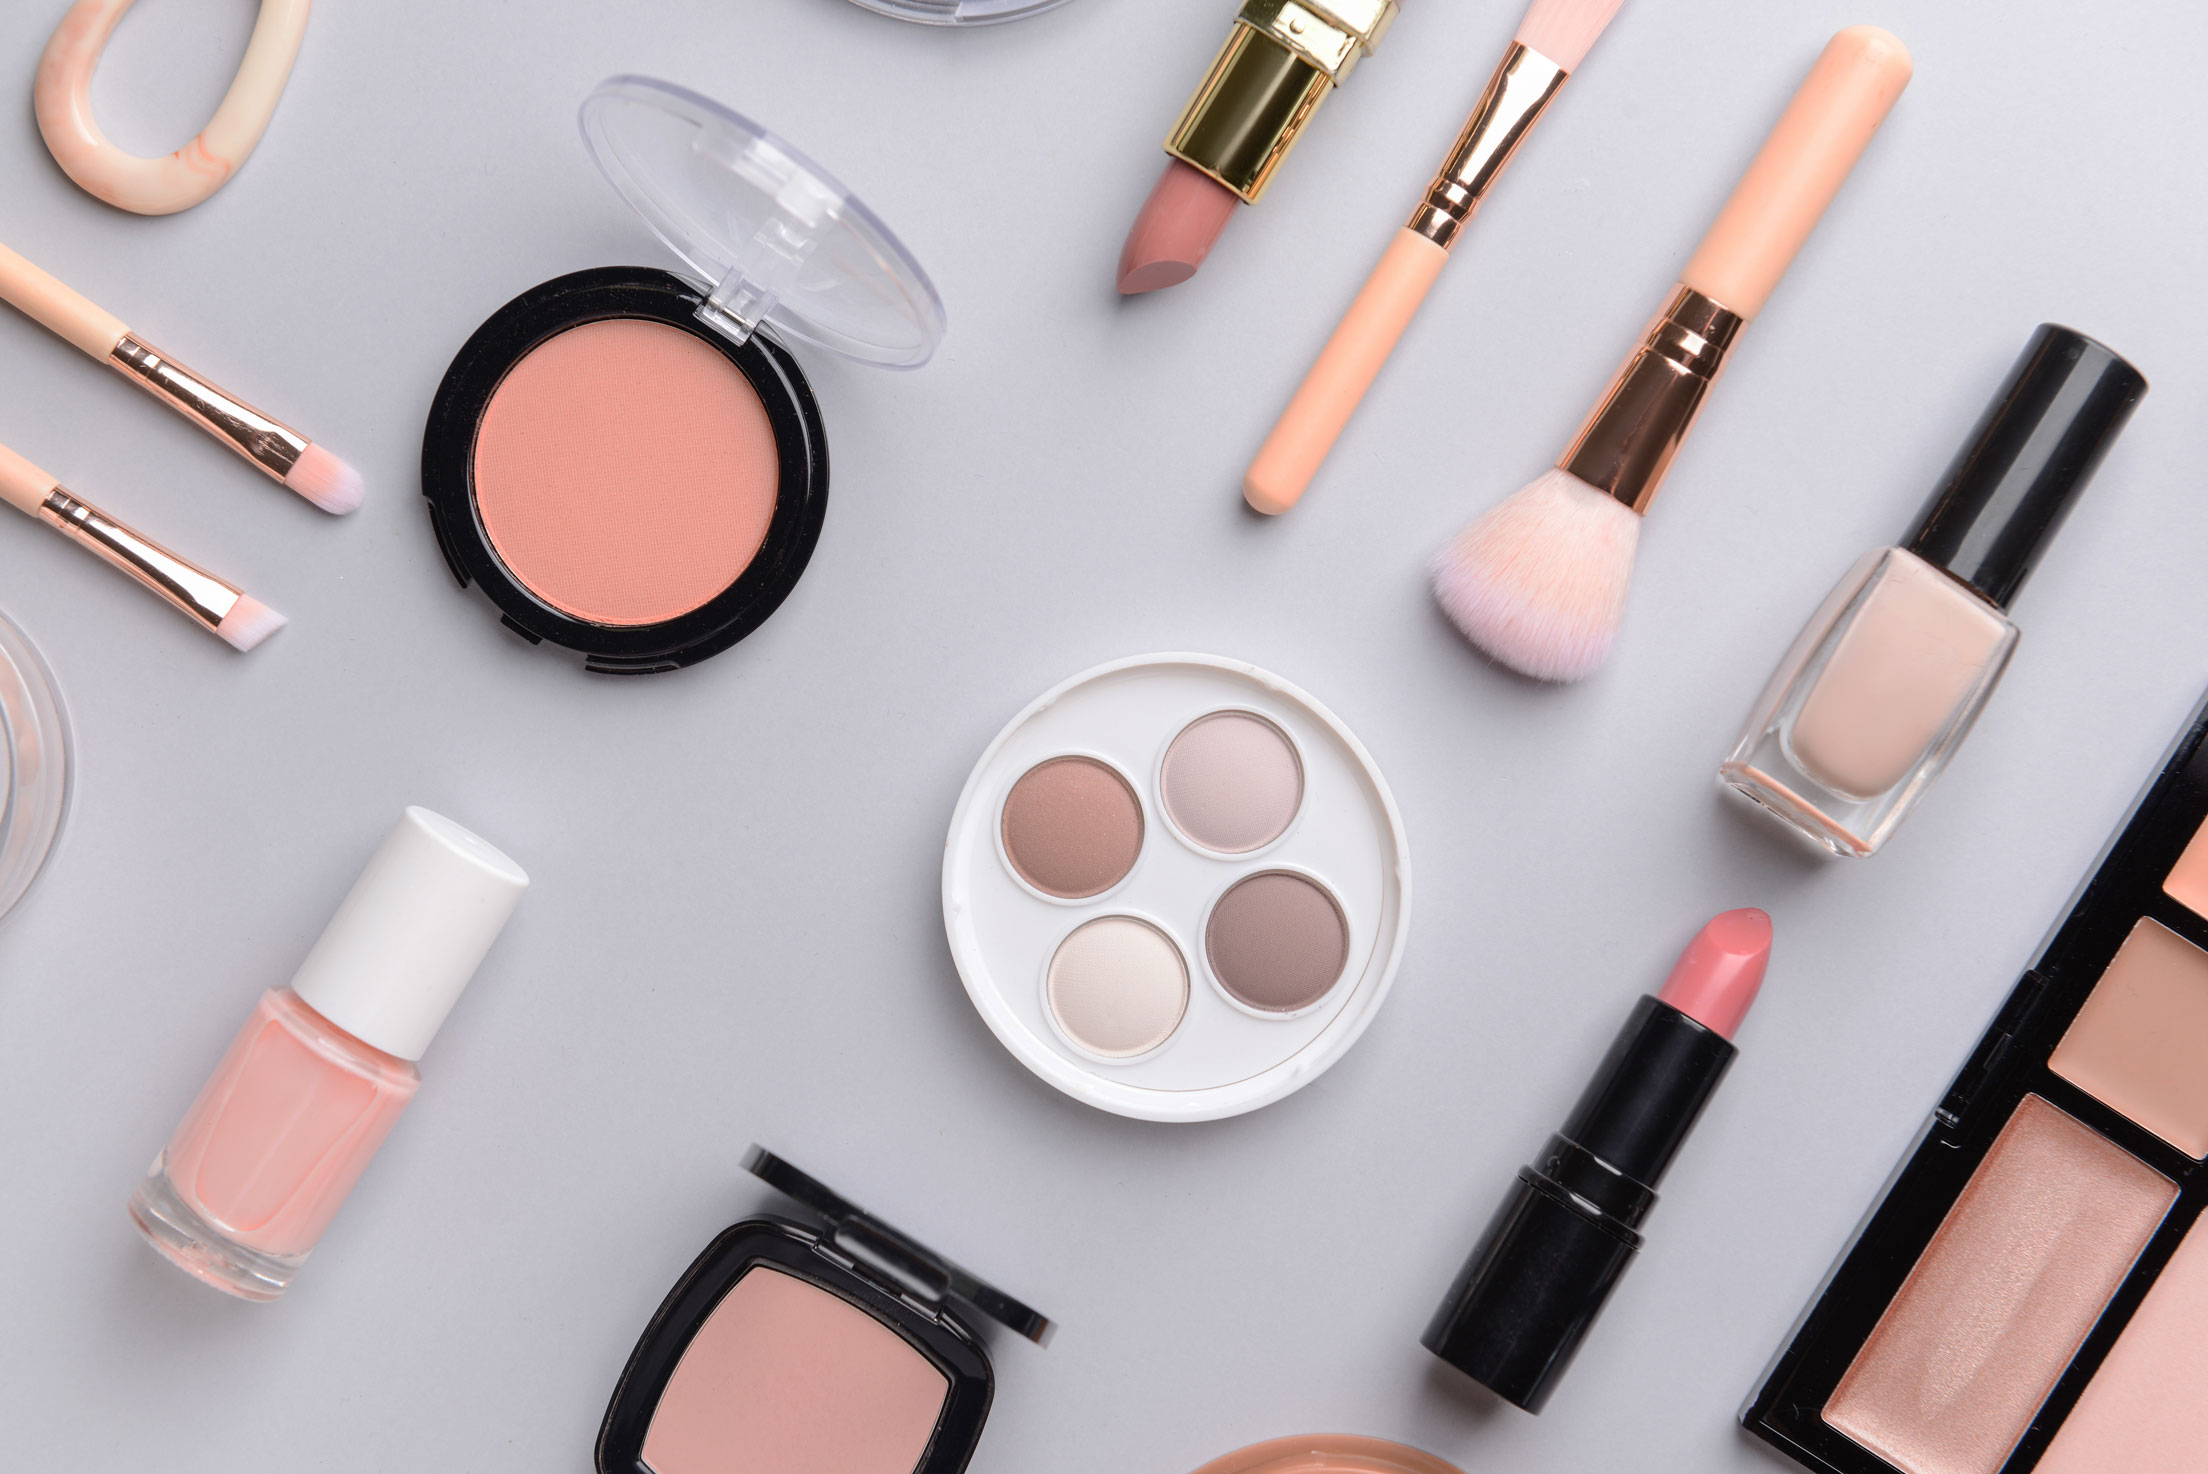 How to Choose the Right Makeup Products for You